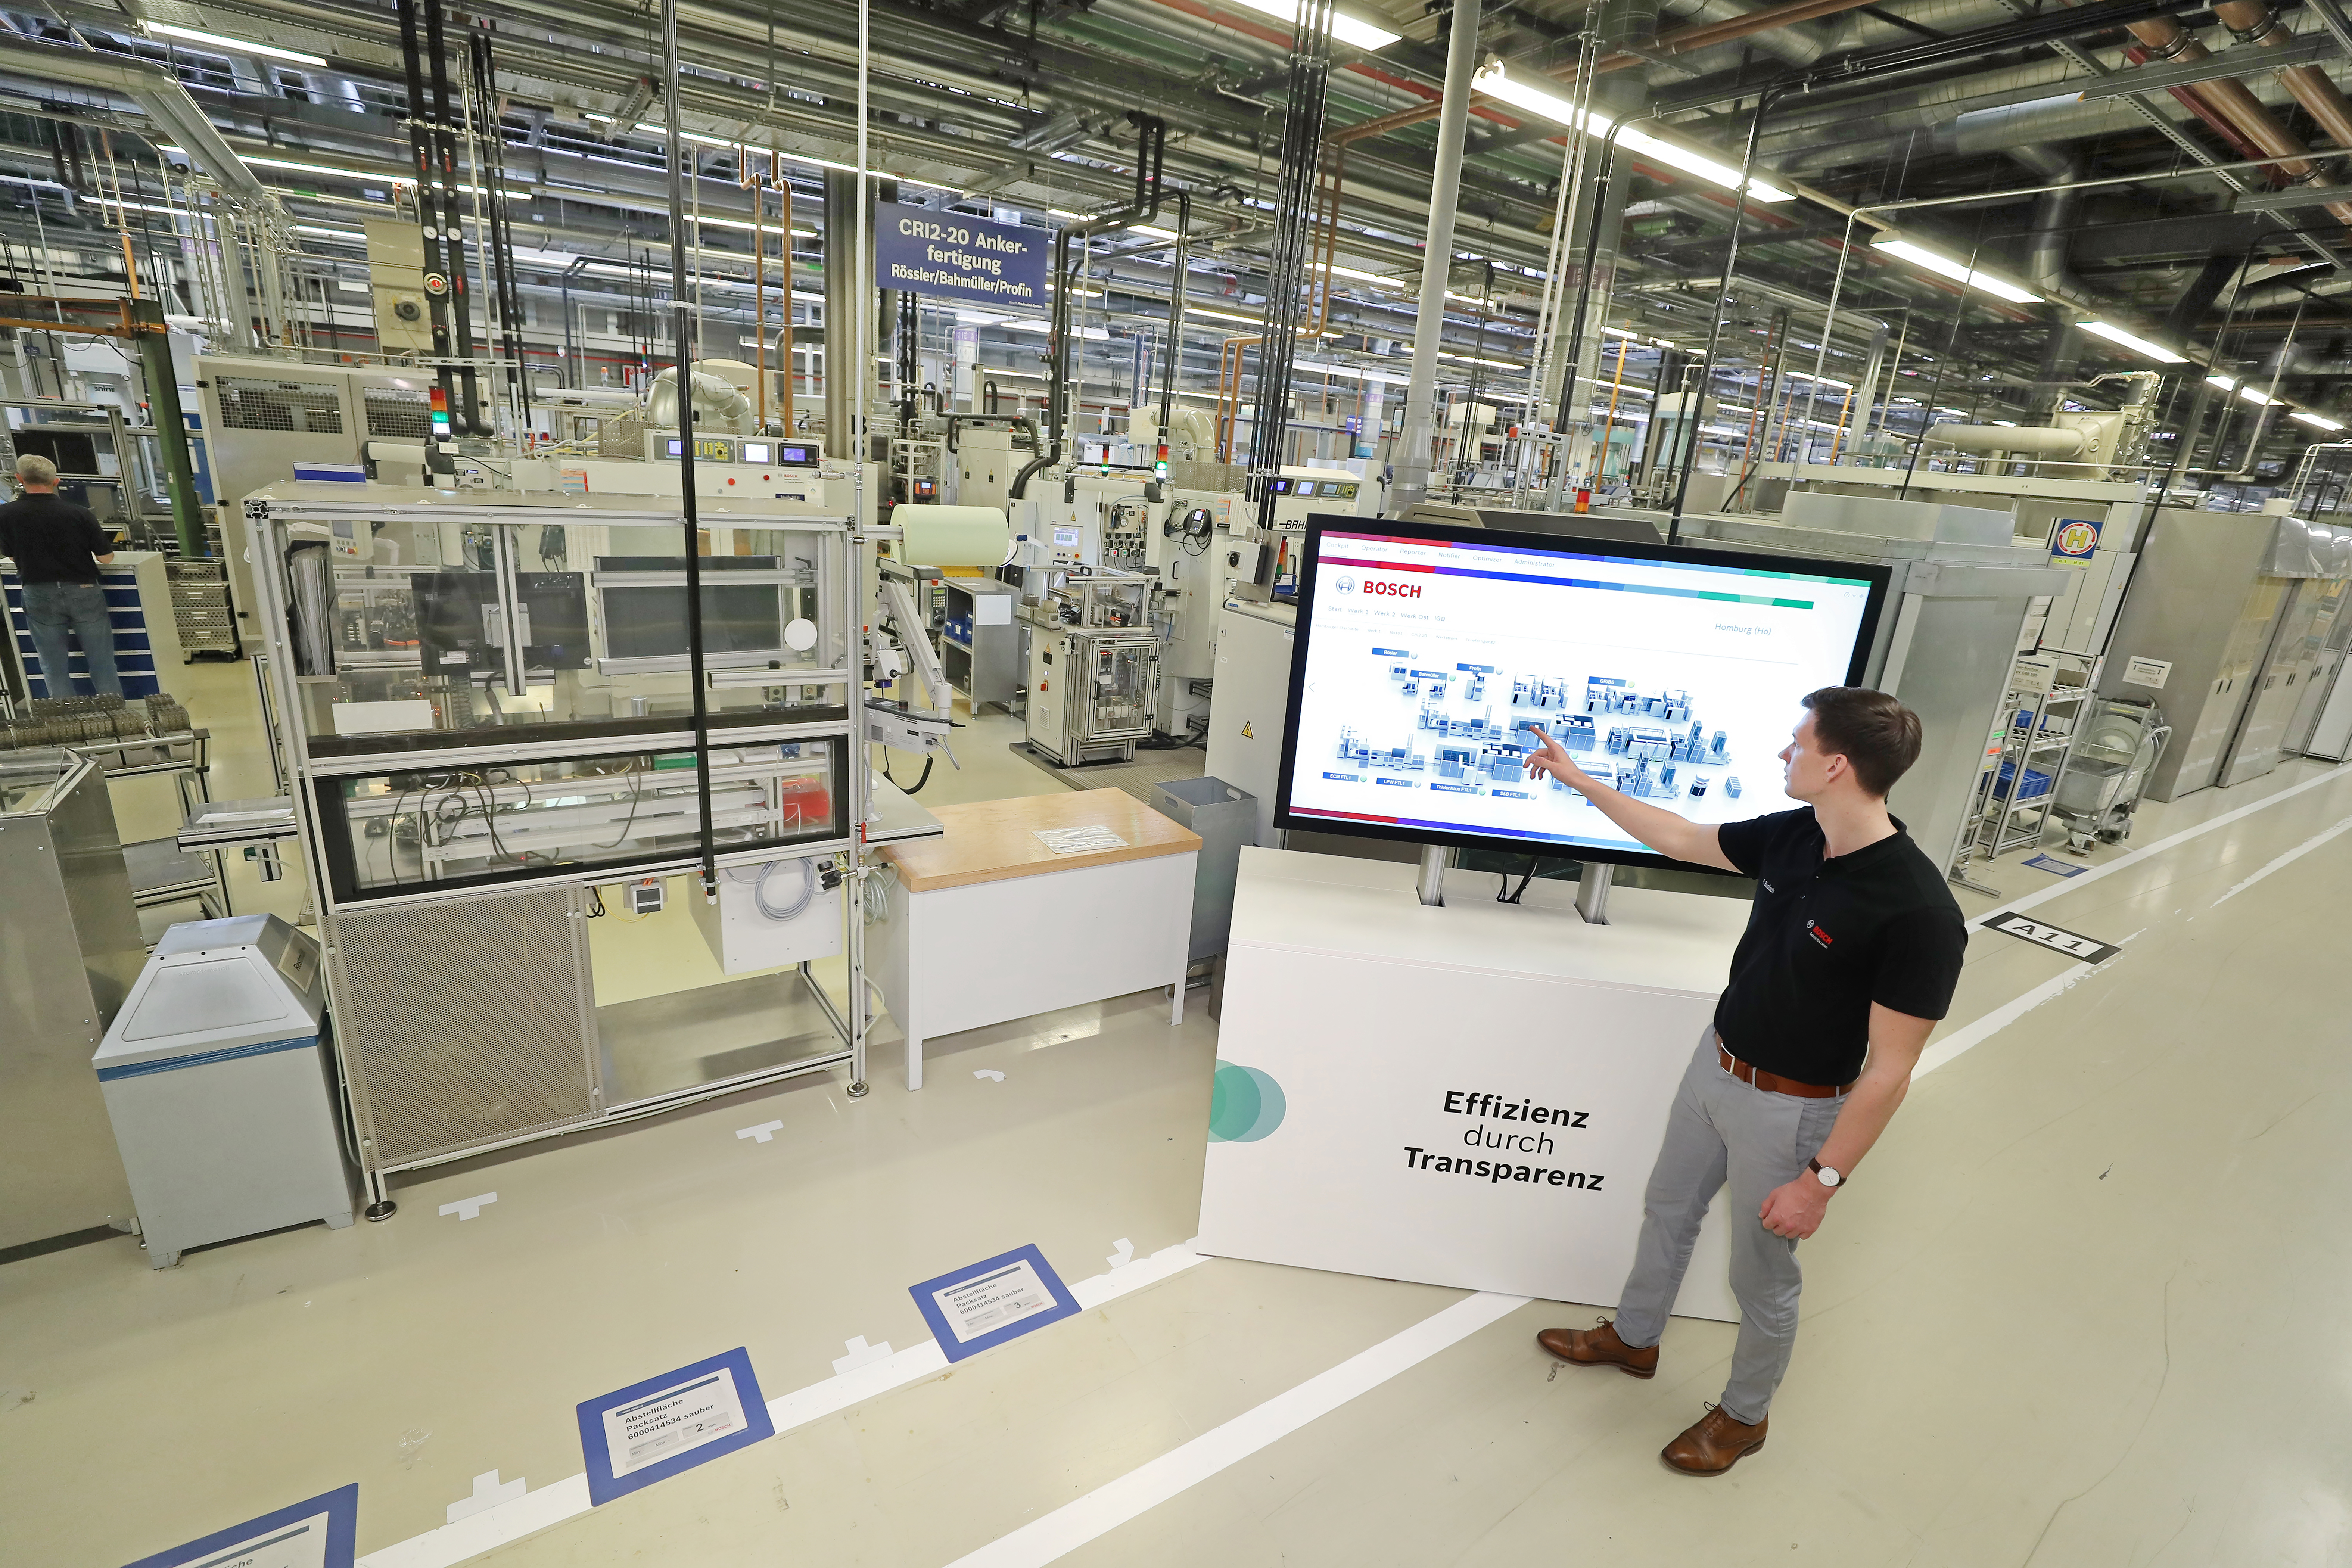 Bosch's pioneering Industry 4.0 role helps make its global manufacturing operations carbon neutral